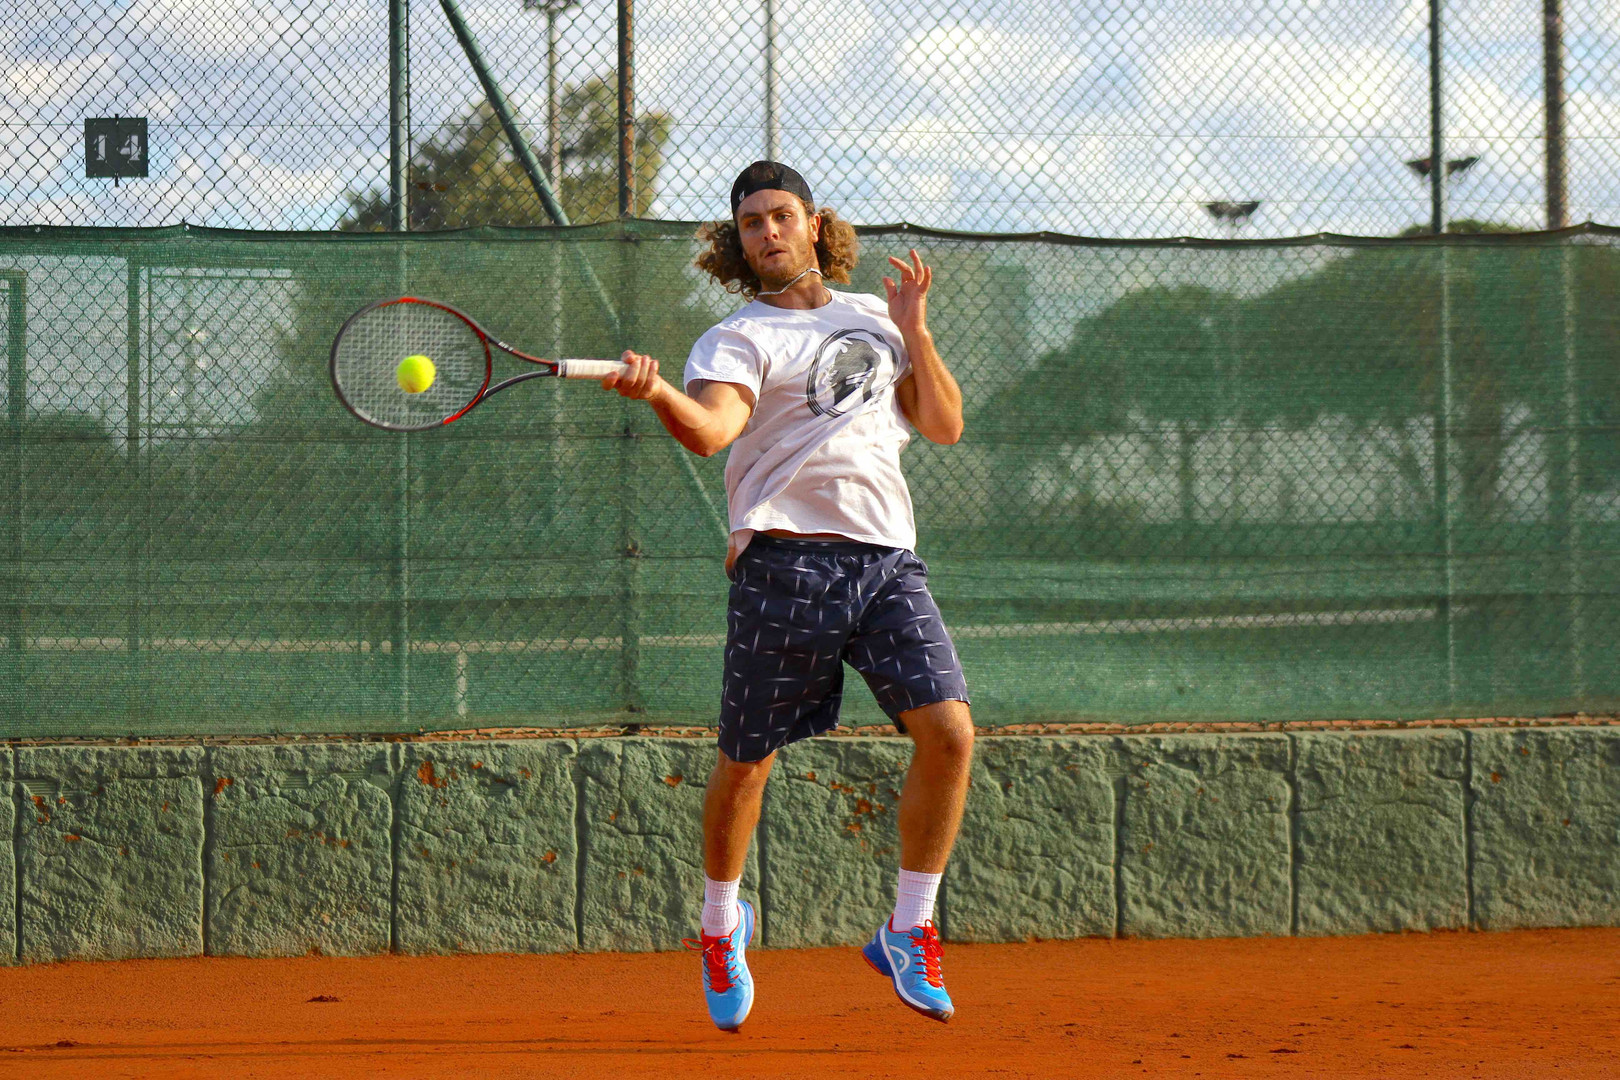 elite tennis academy copia-min.jpg